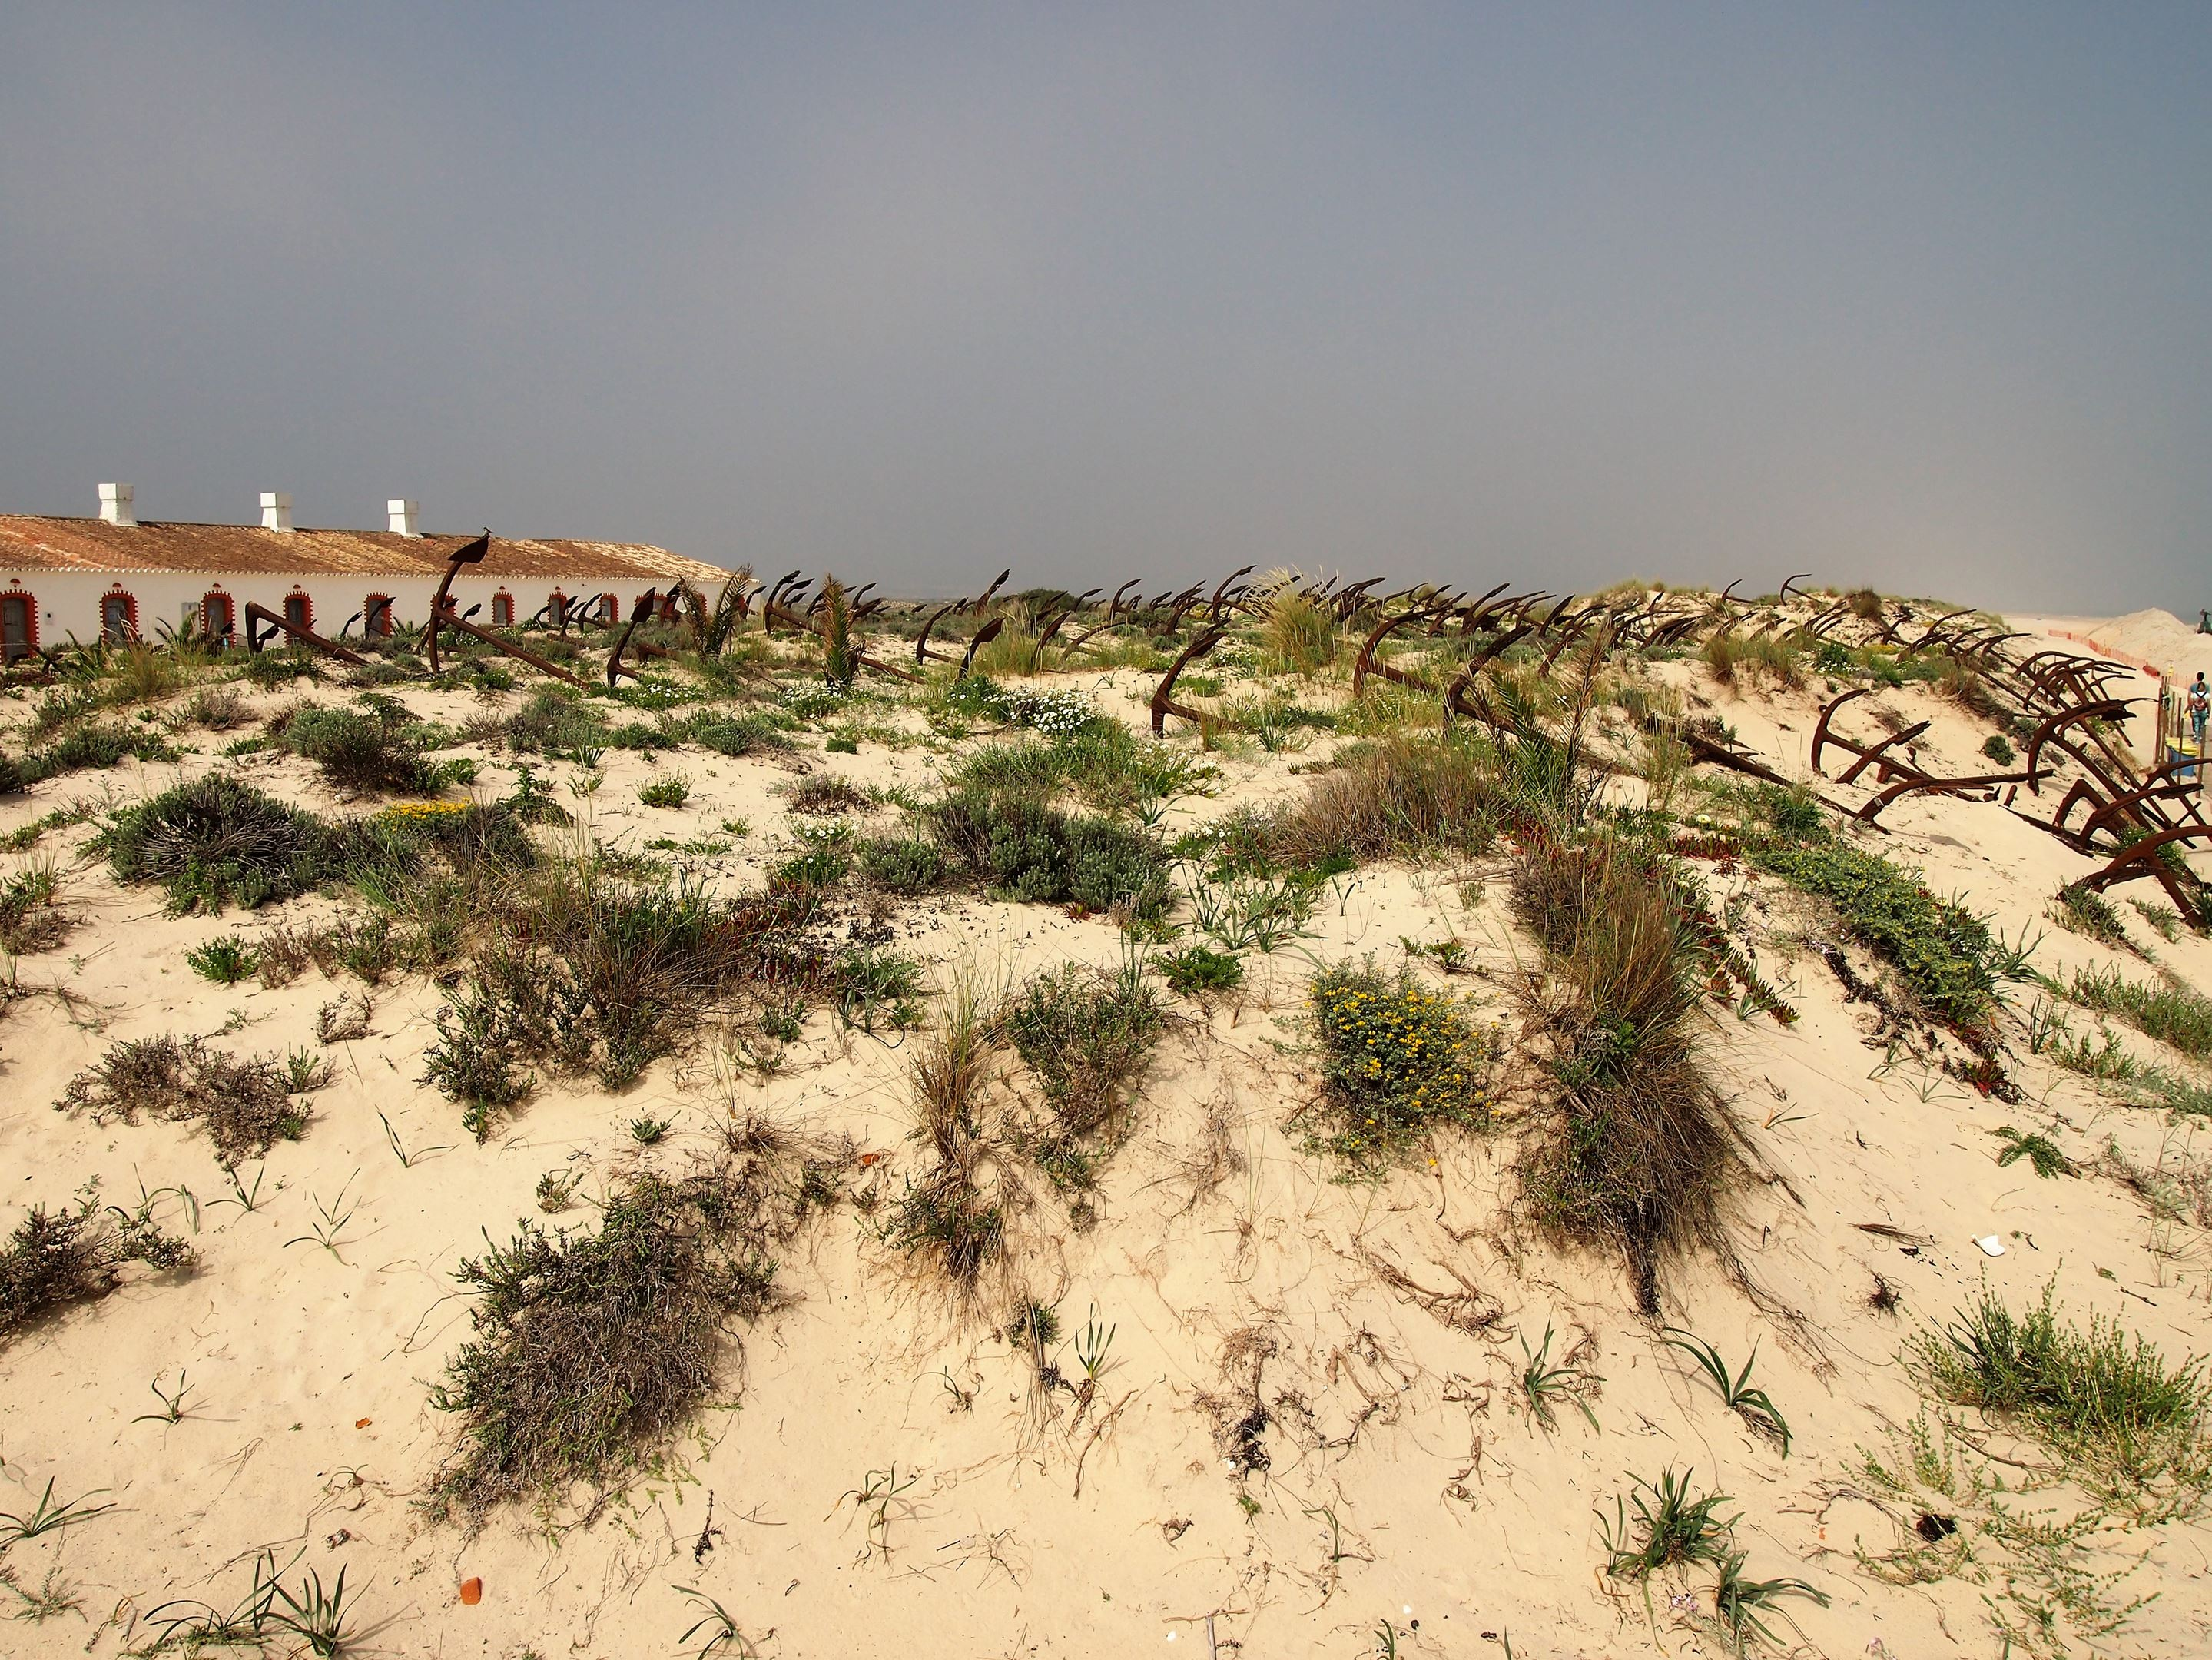 On the west side of Ilha de Tavira, is the anchor cemetery, at Praia do Barril